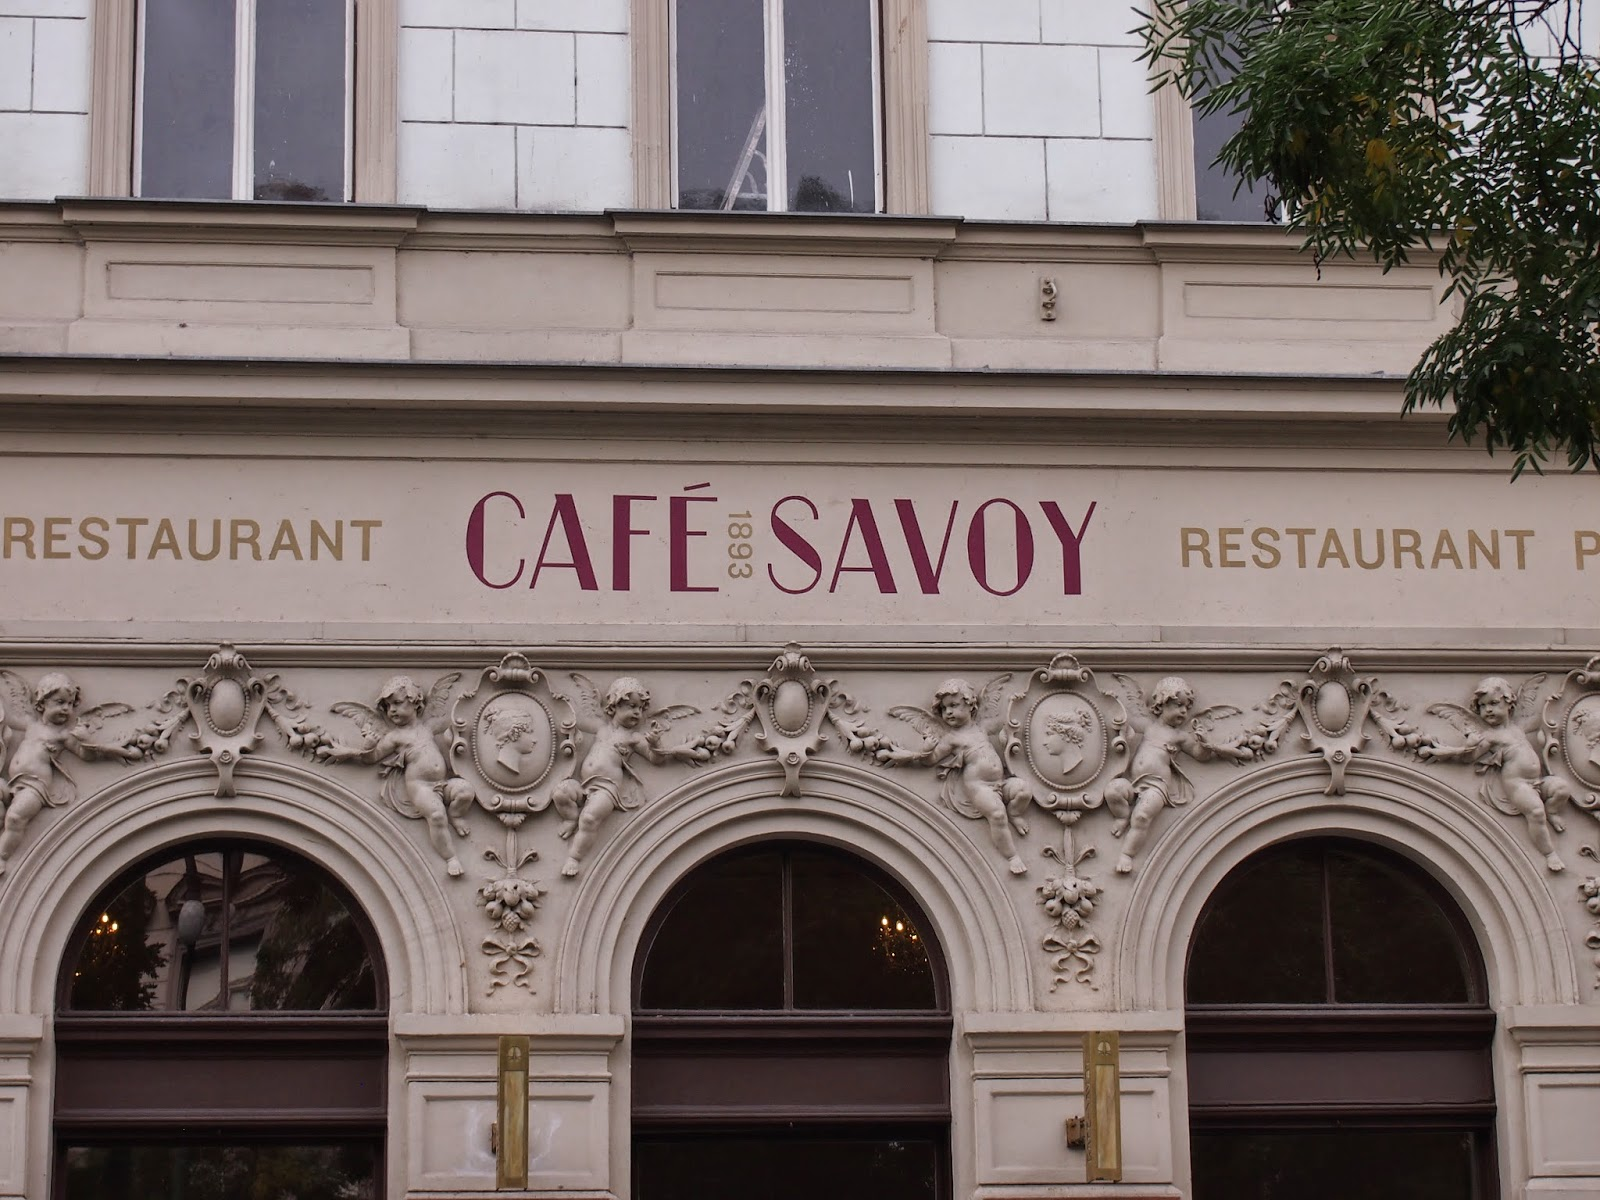 The exterior of cafe savoy